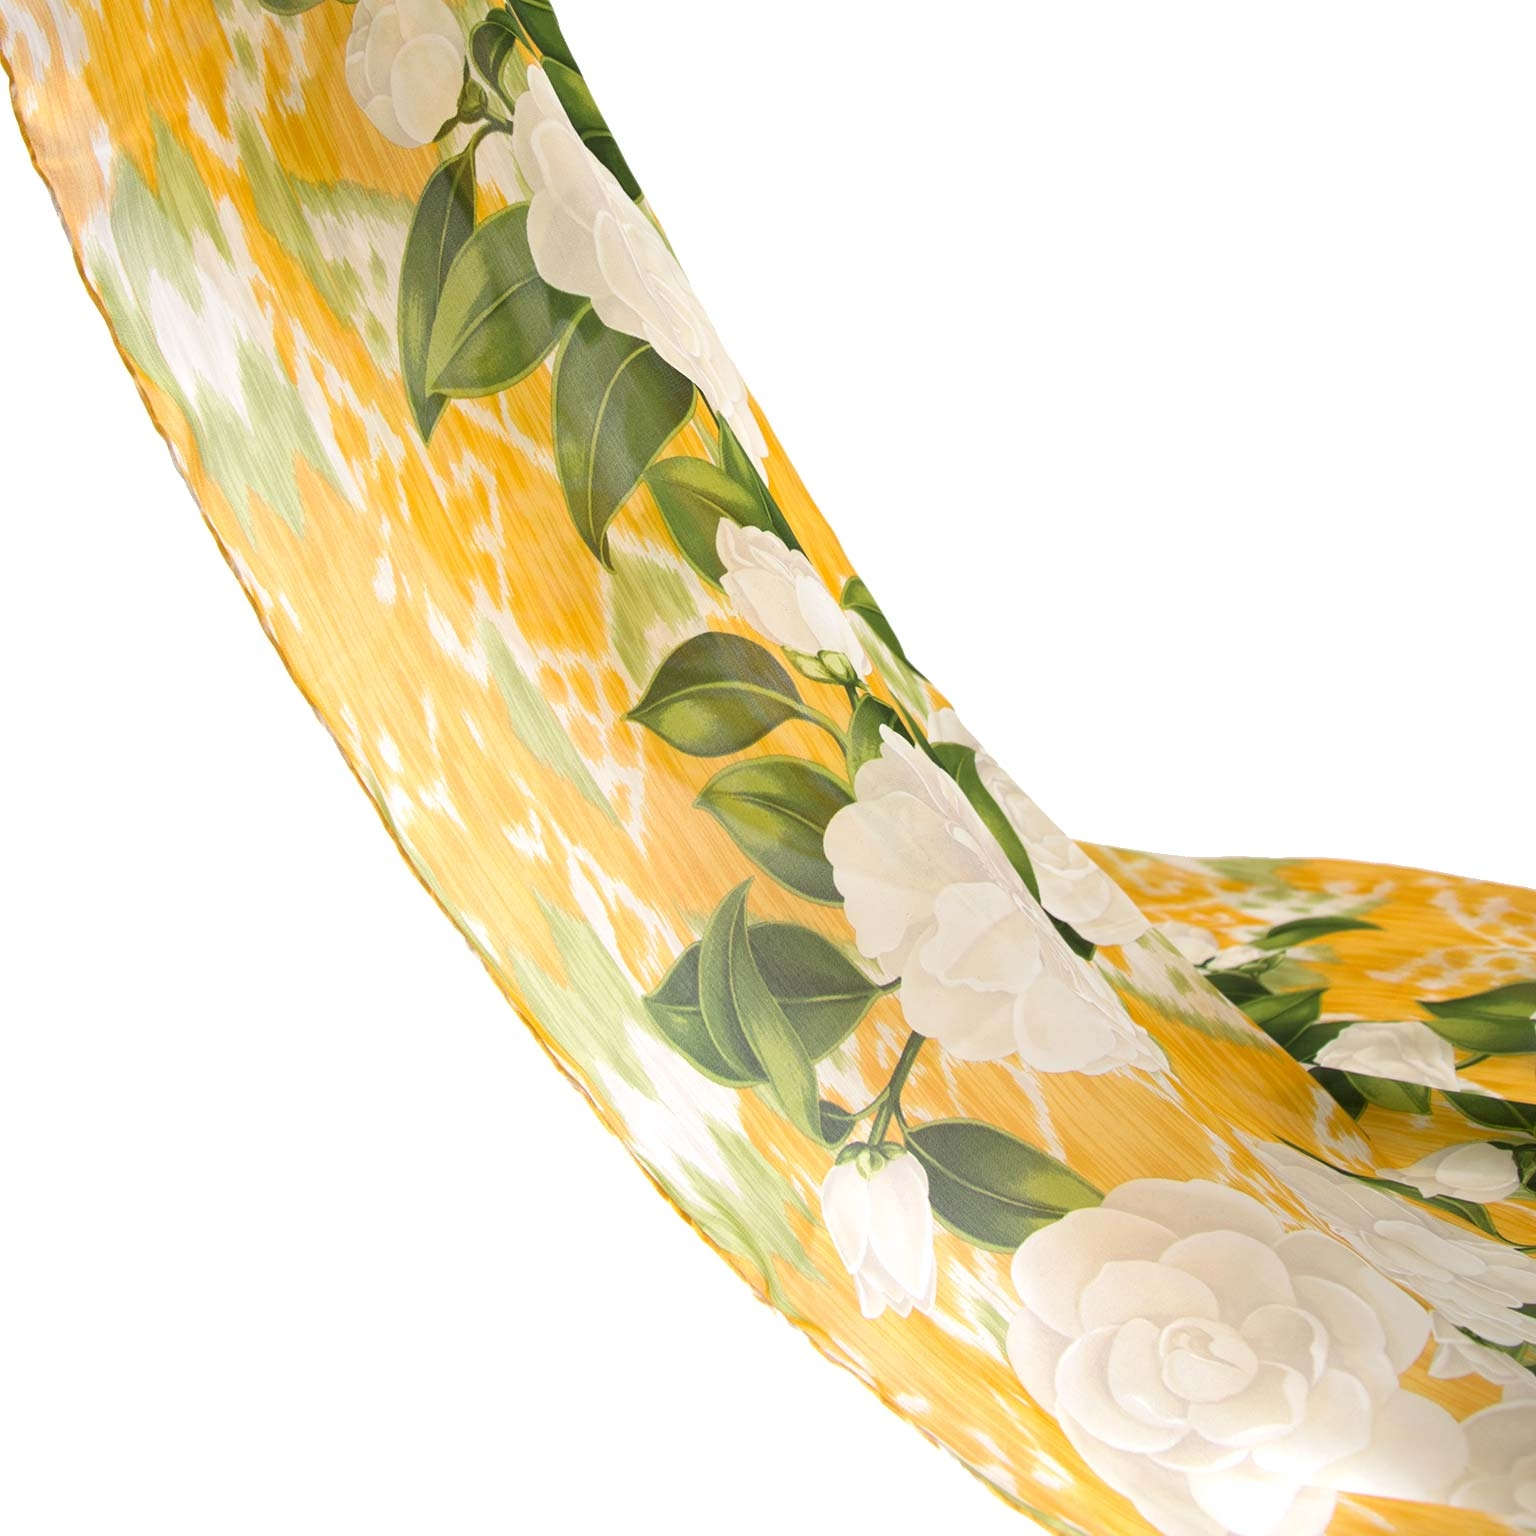 Chanel Yellow & Green Silk Scarf with White Flowers Buy authentic designer Chanel secondhand scarves at Labellov at the best price. Safe and secure shopping. Koop tweedehands authentieke Chanel sjaals bij designer webwinkel labellov.